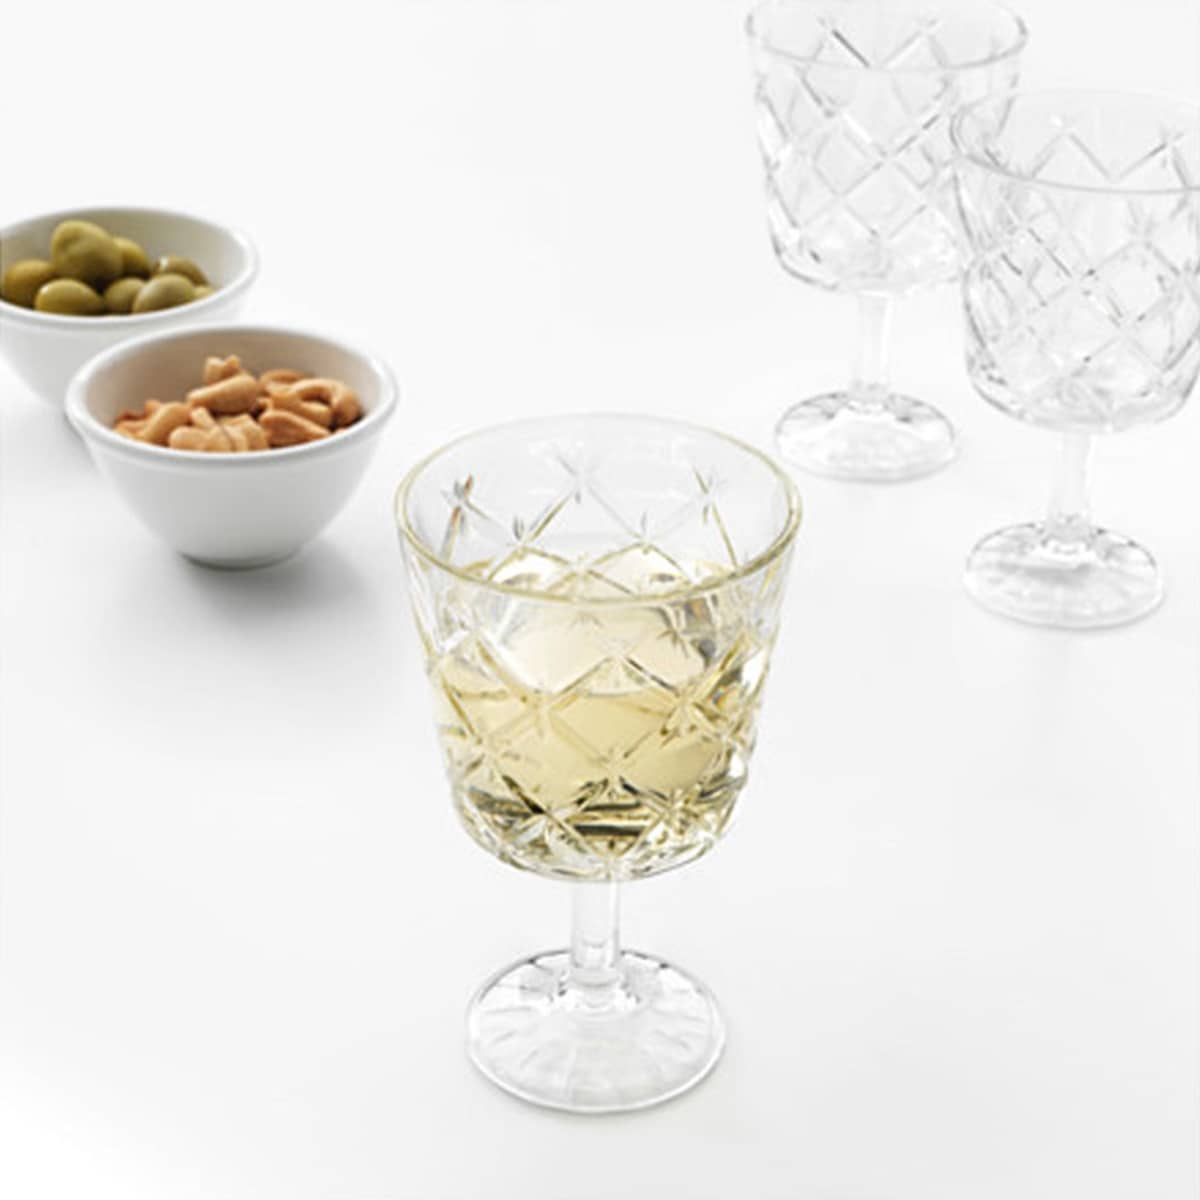 10 Wine Glasses That Can Go in the Dishwasher: gallery image 2